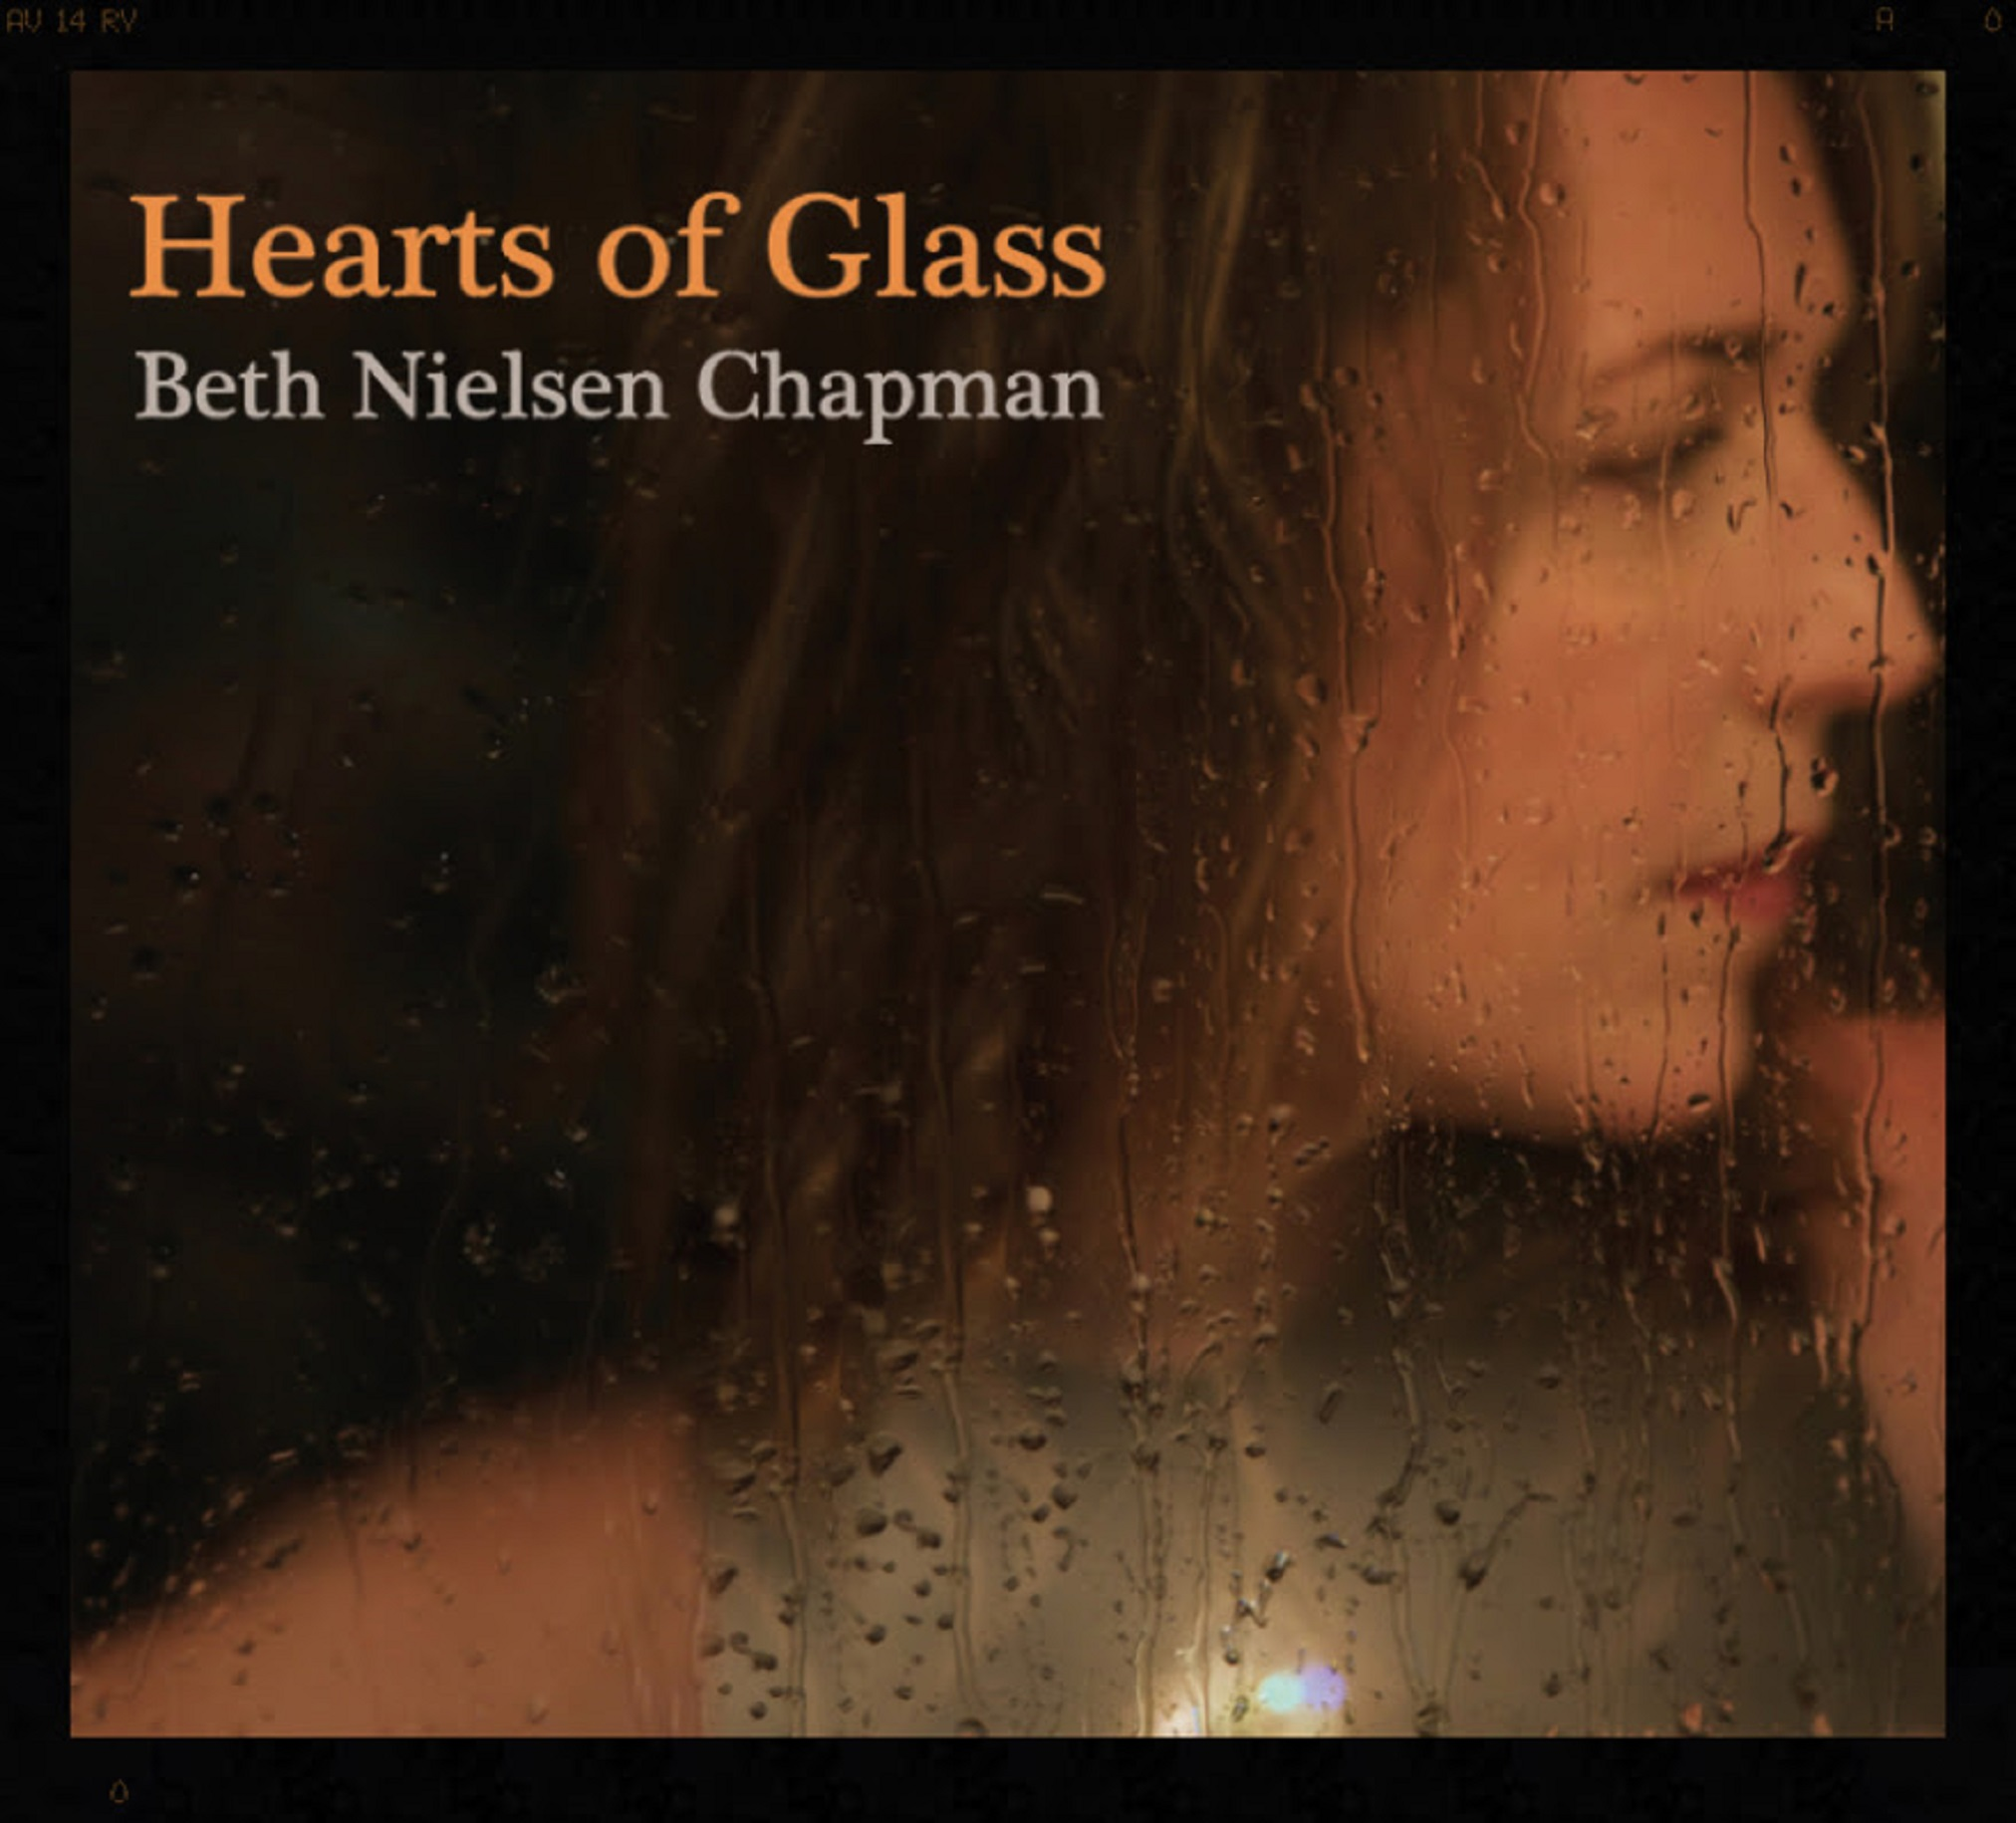 Beth Nielsen Chapman Returns With 'Hearts of Glass'